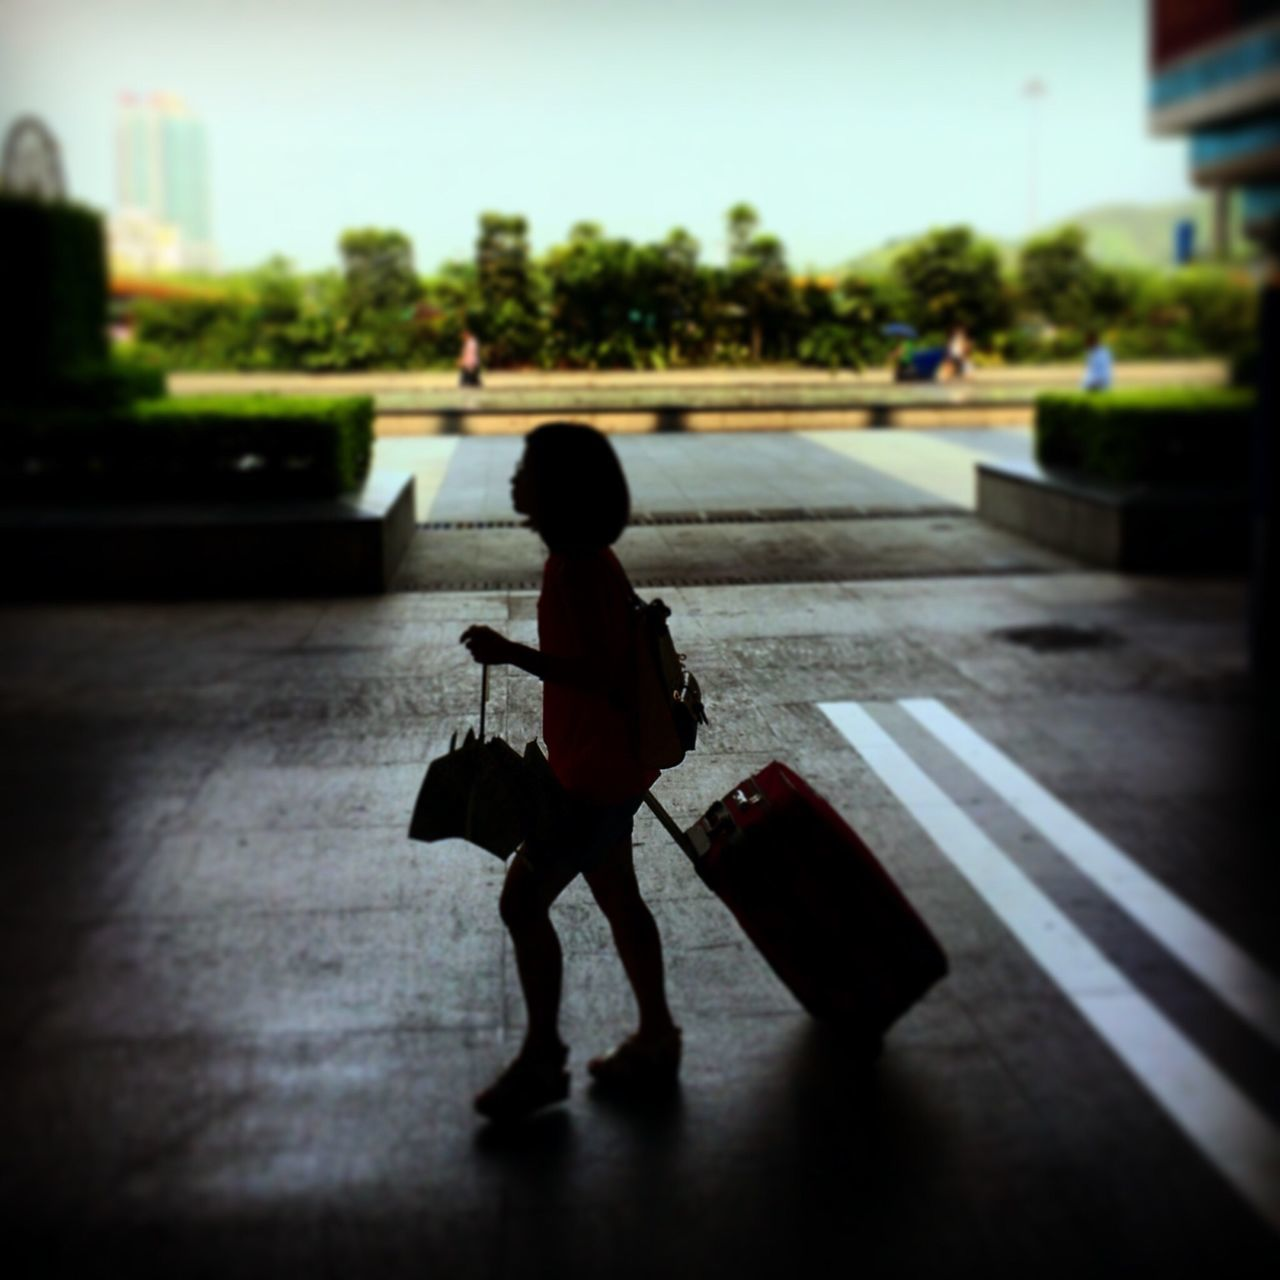 Traveling Luggage Train Station Station Trip Boarding City Life Travel Ready To Go Leaving City Leaving On Way IPhoneography Shenzhen China Daily Life Carrying Heavy Stuff Carrying Carrying Luggage The City Light Long Goodbye